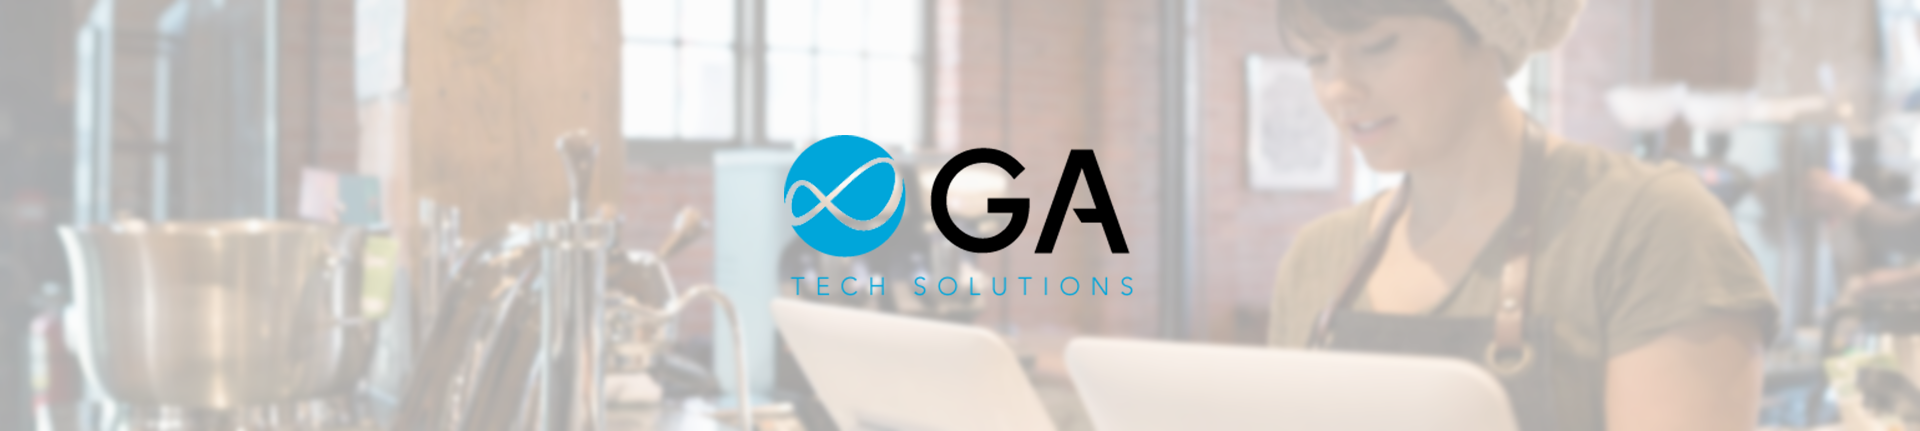 GA_TechSolutions